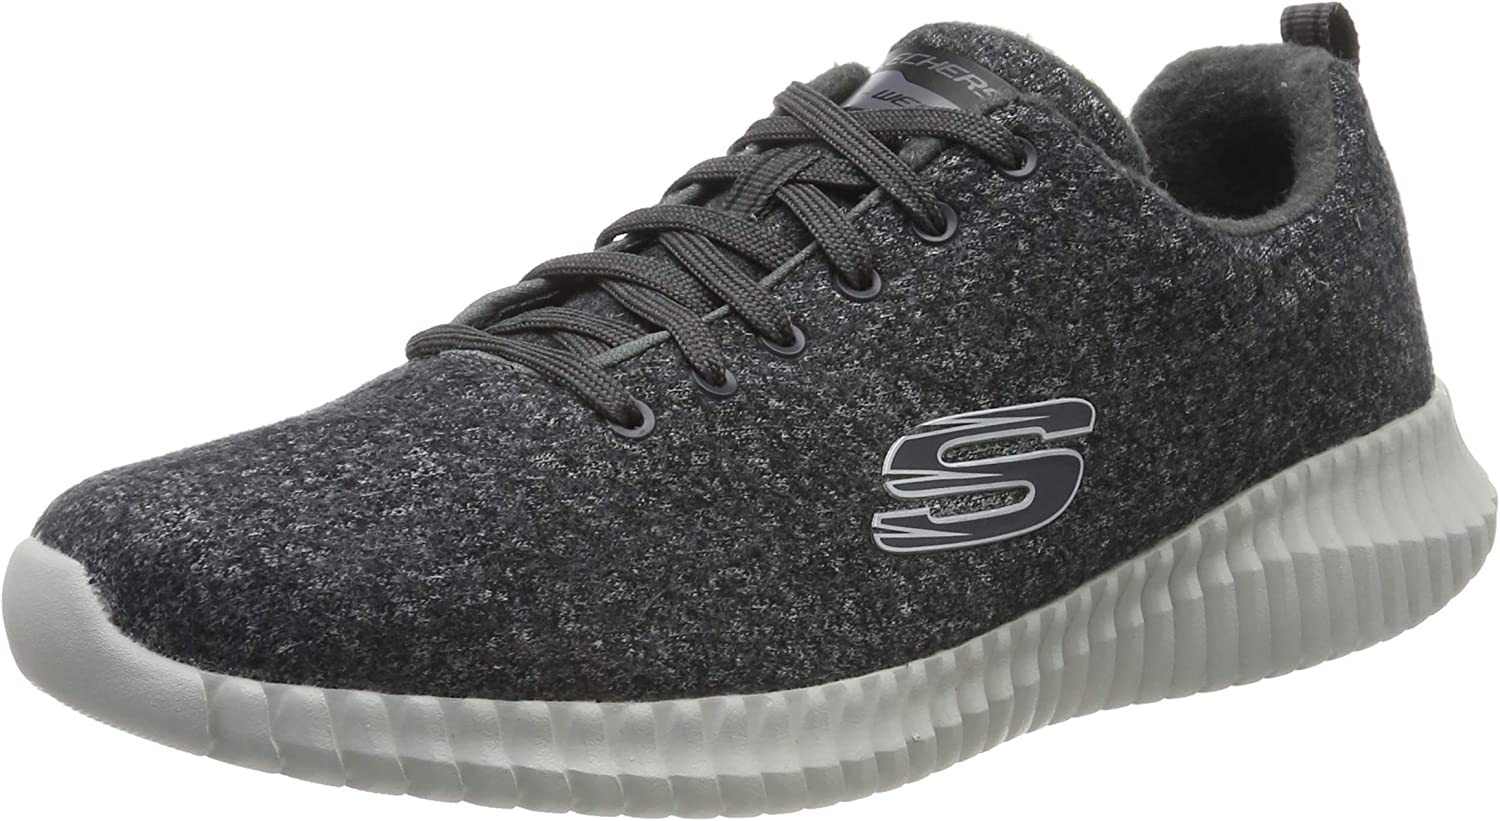 In a popularity Skechers Men's OFFicial store Trainers Low-Top